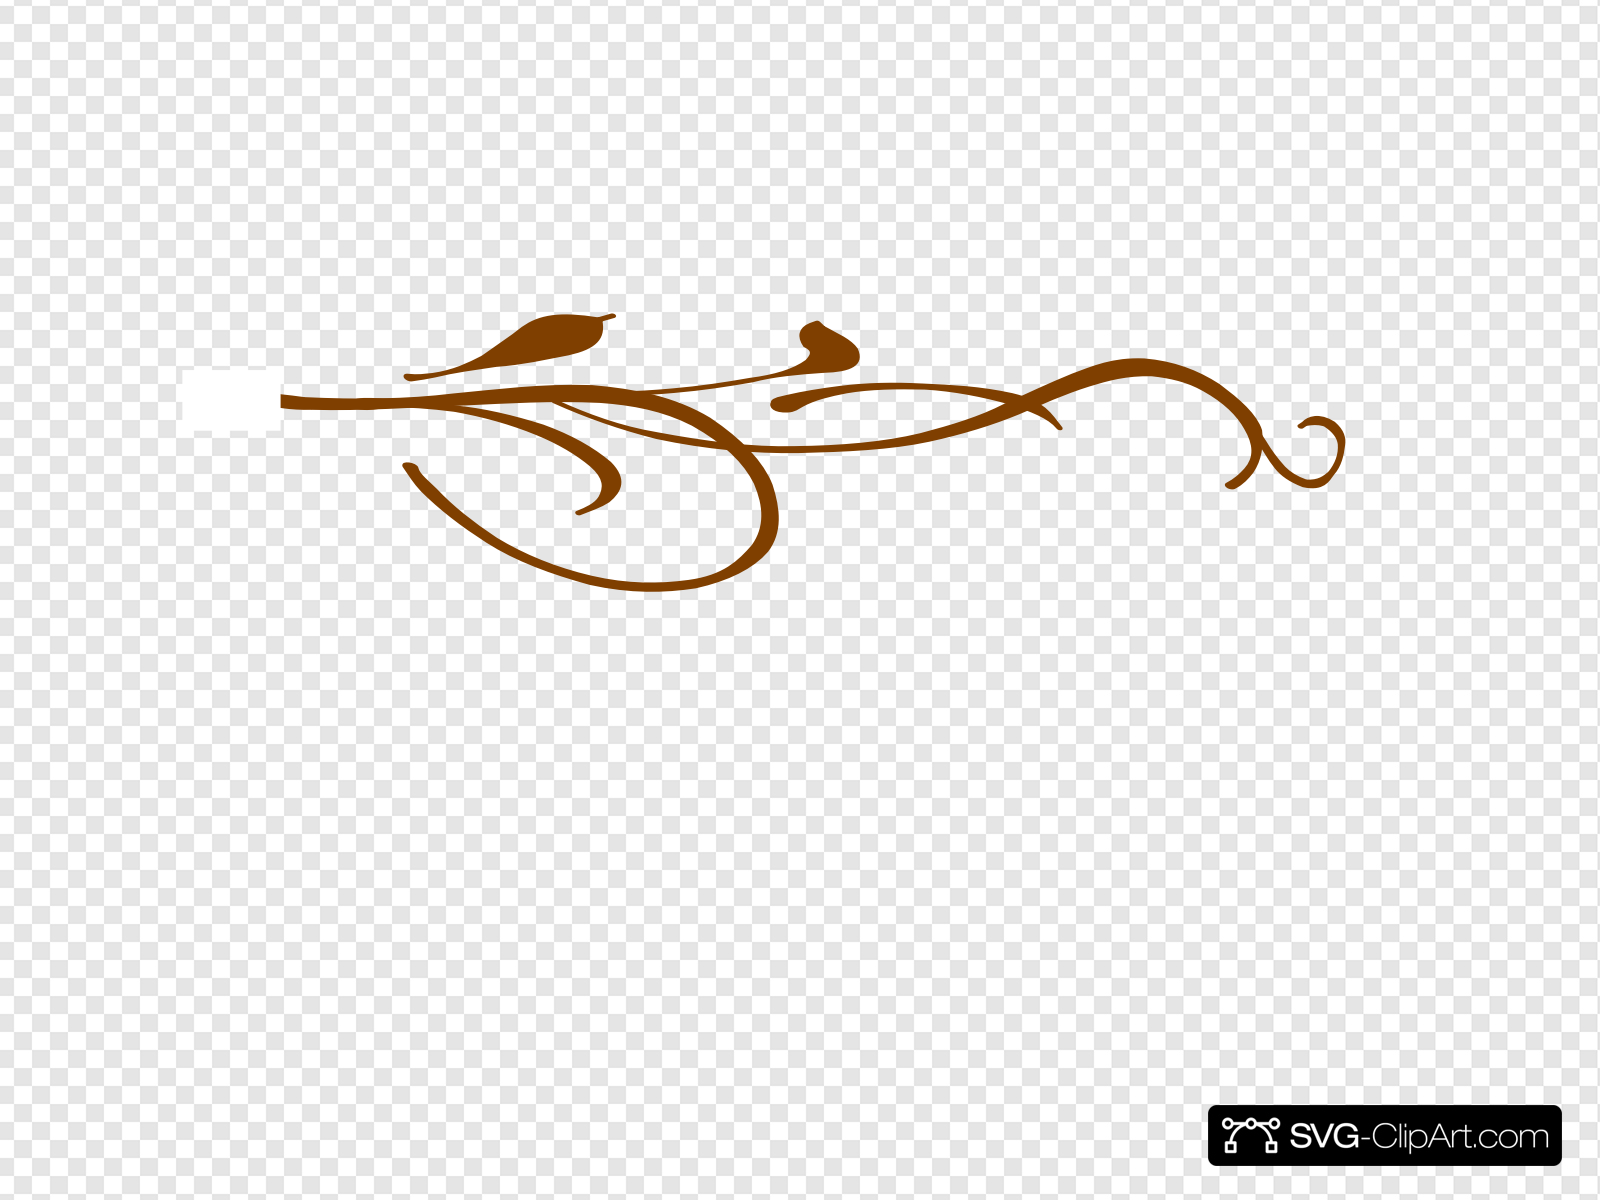 Swirl Brown Top Clip art, Icon and SVG.